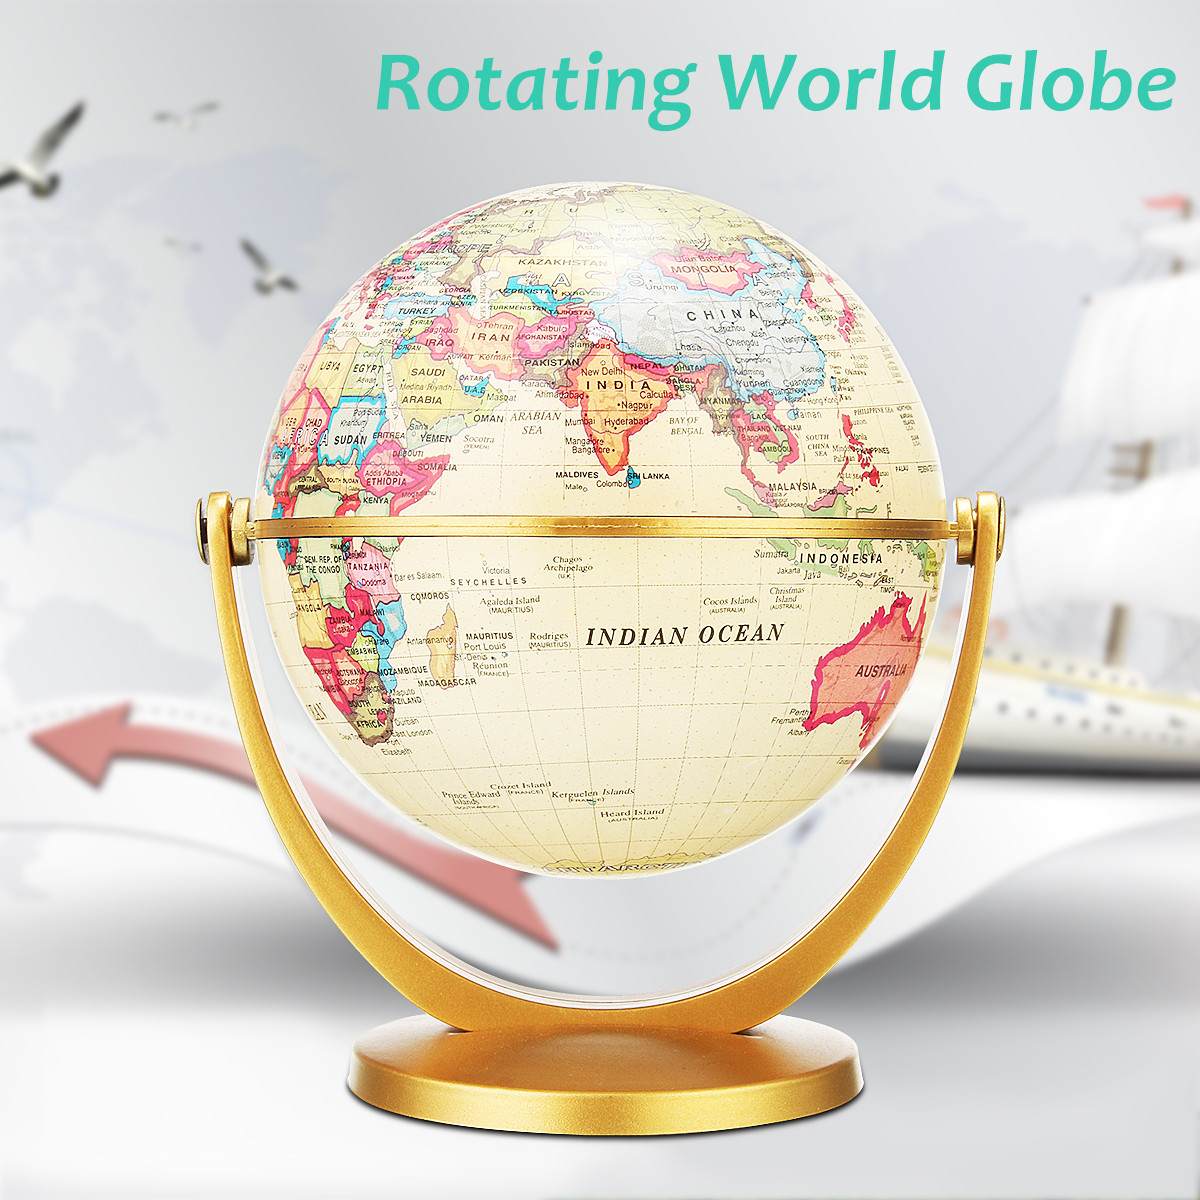 12cm English Edition Rotate Globe World Earth Map Antique Desktop Decorative World Geography Educational Home Office Decoration